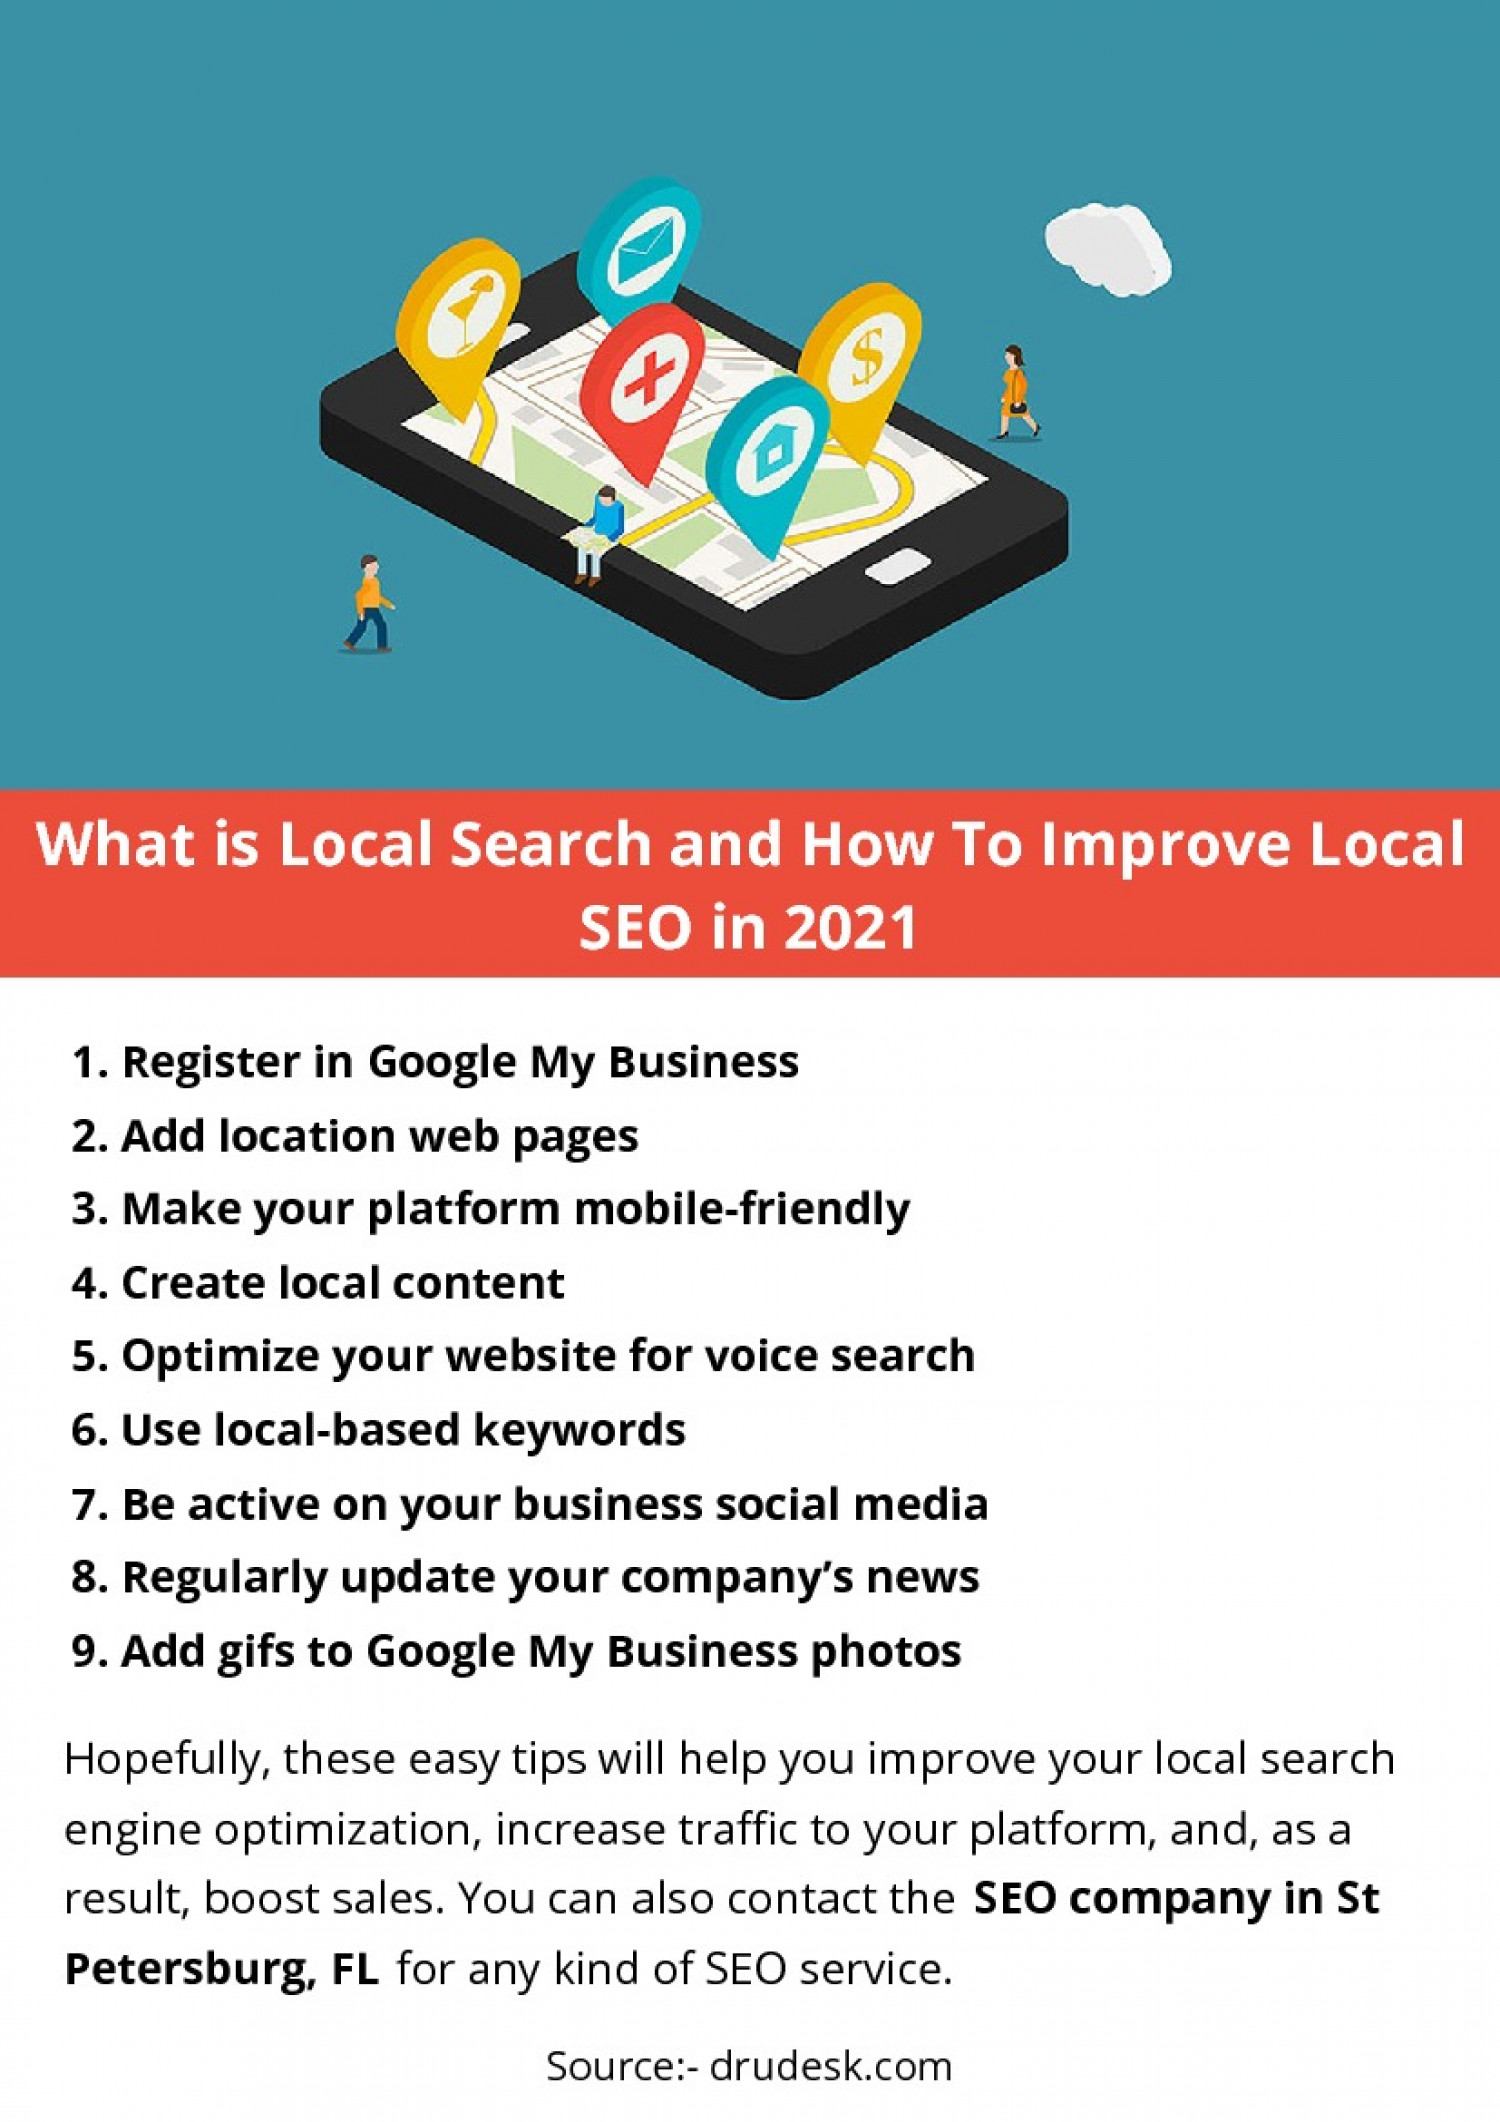 What is local search and how to improve local SEO in 2021 Infographic